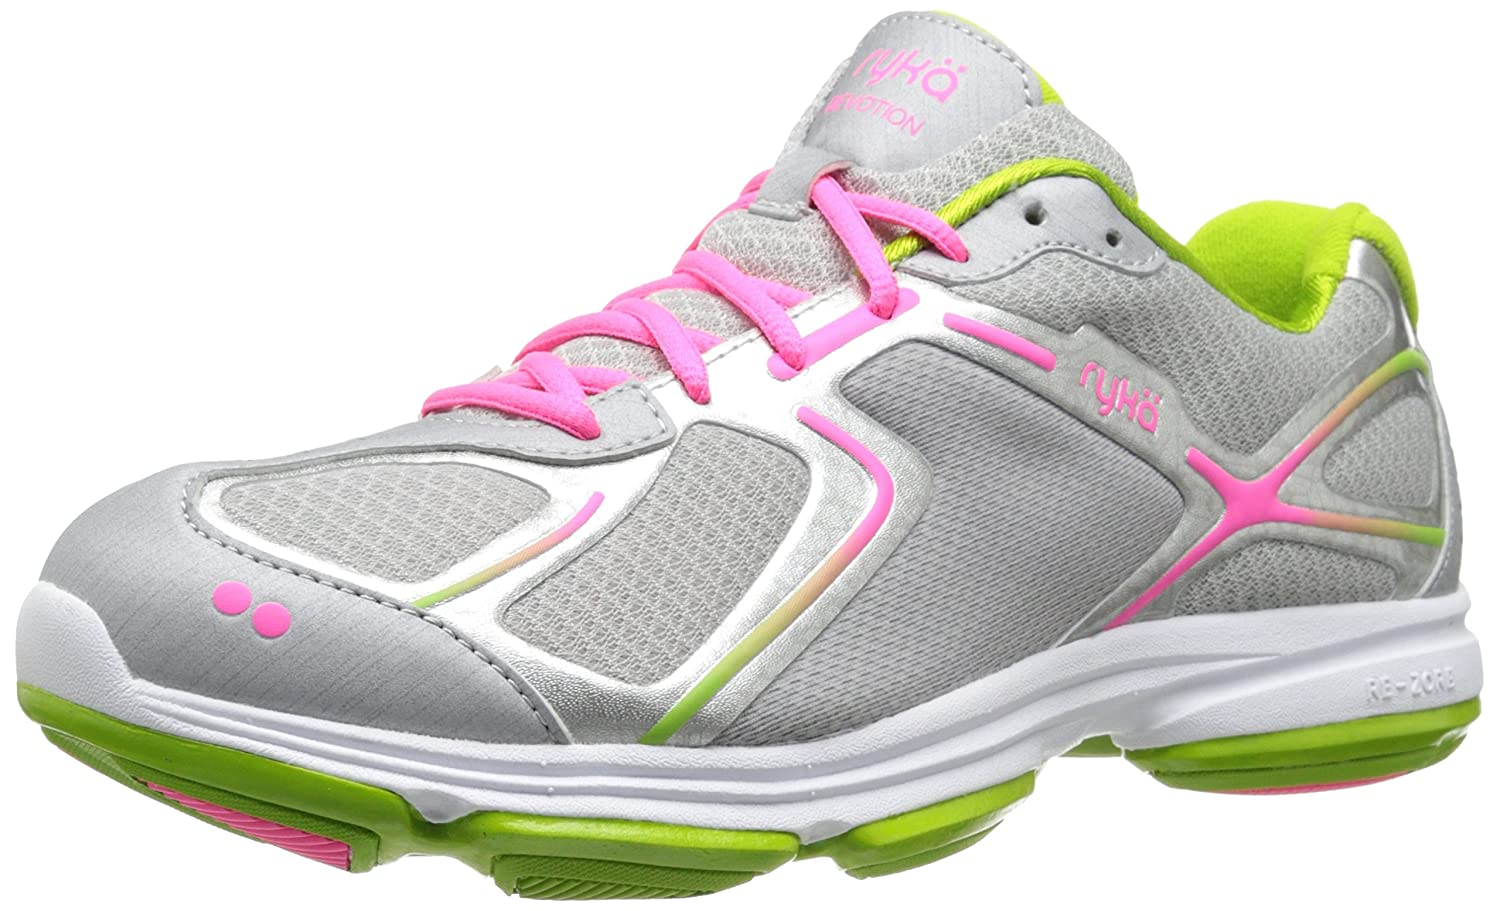 Ryka Women's Devotion Walking Shoe B00I9TUYDW 7.5 W US|Chrome Silver/Lime Blaze/Atomic Pink